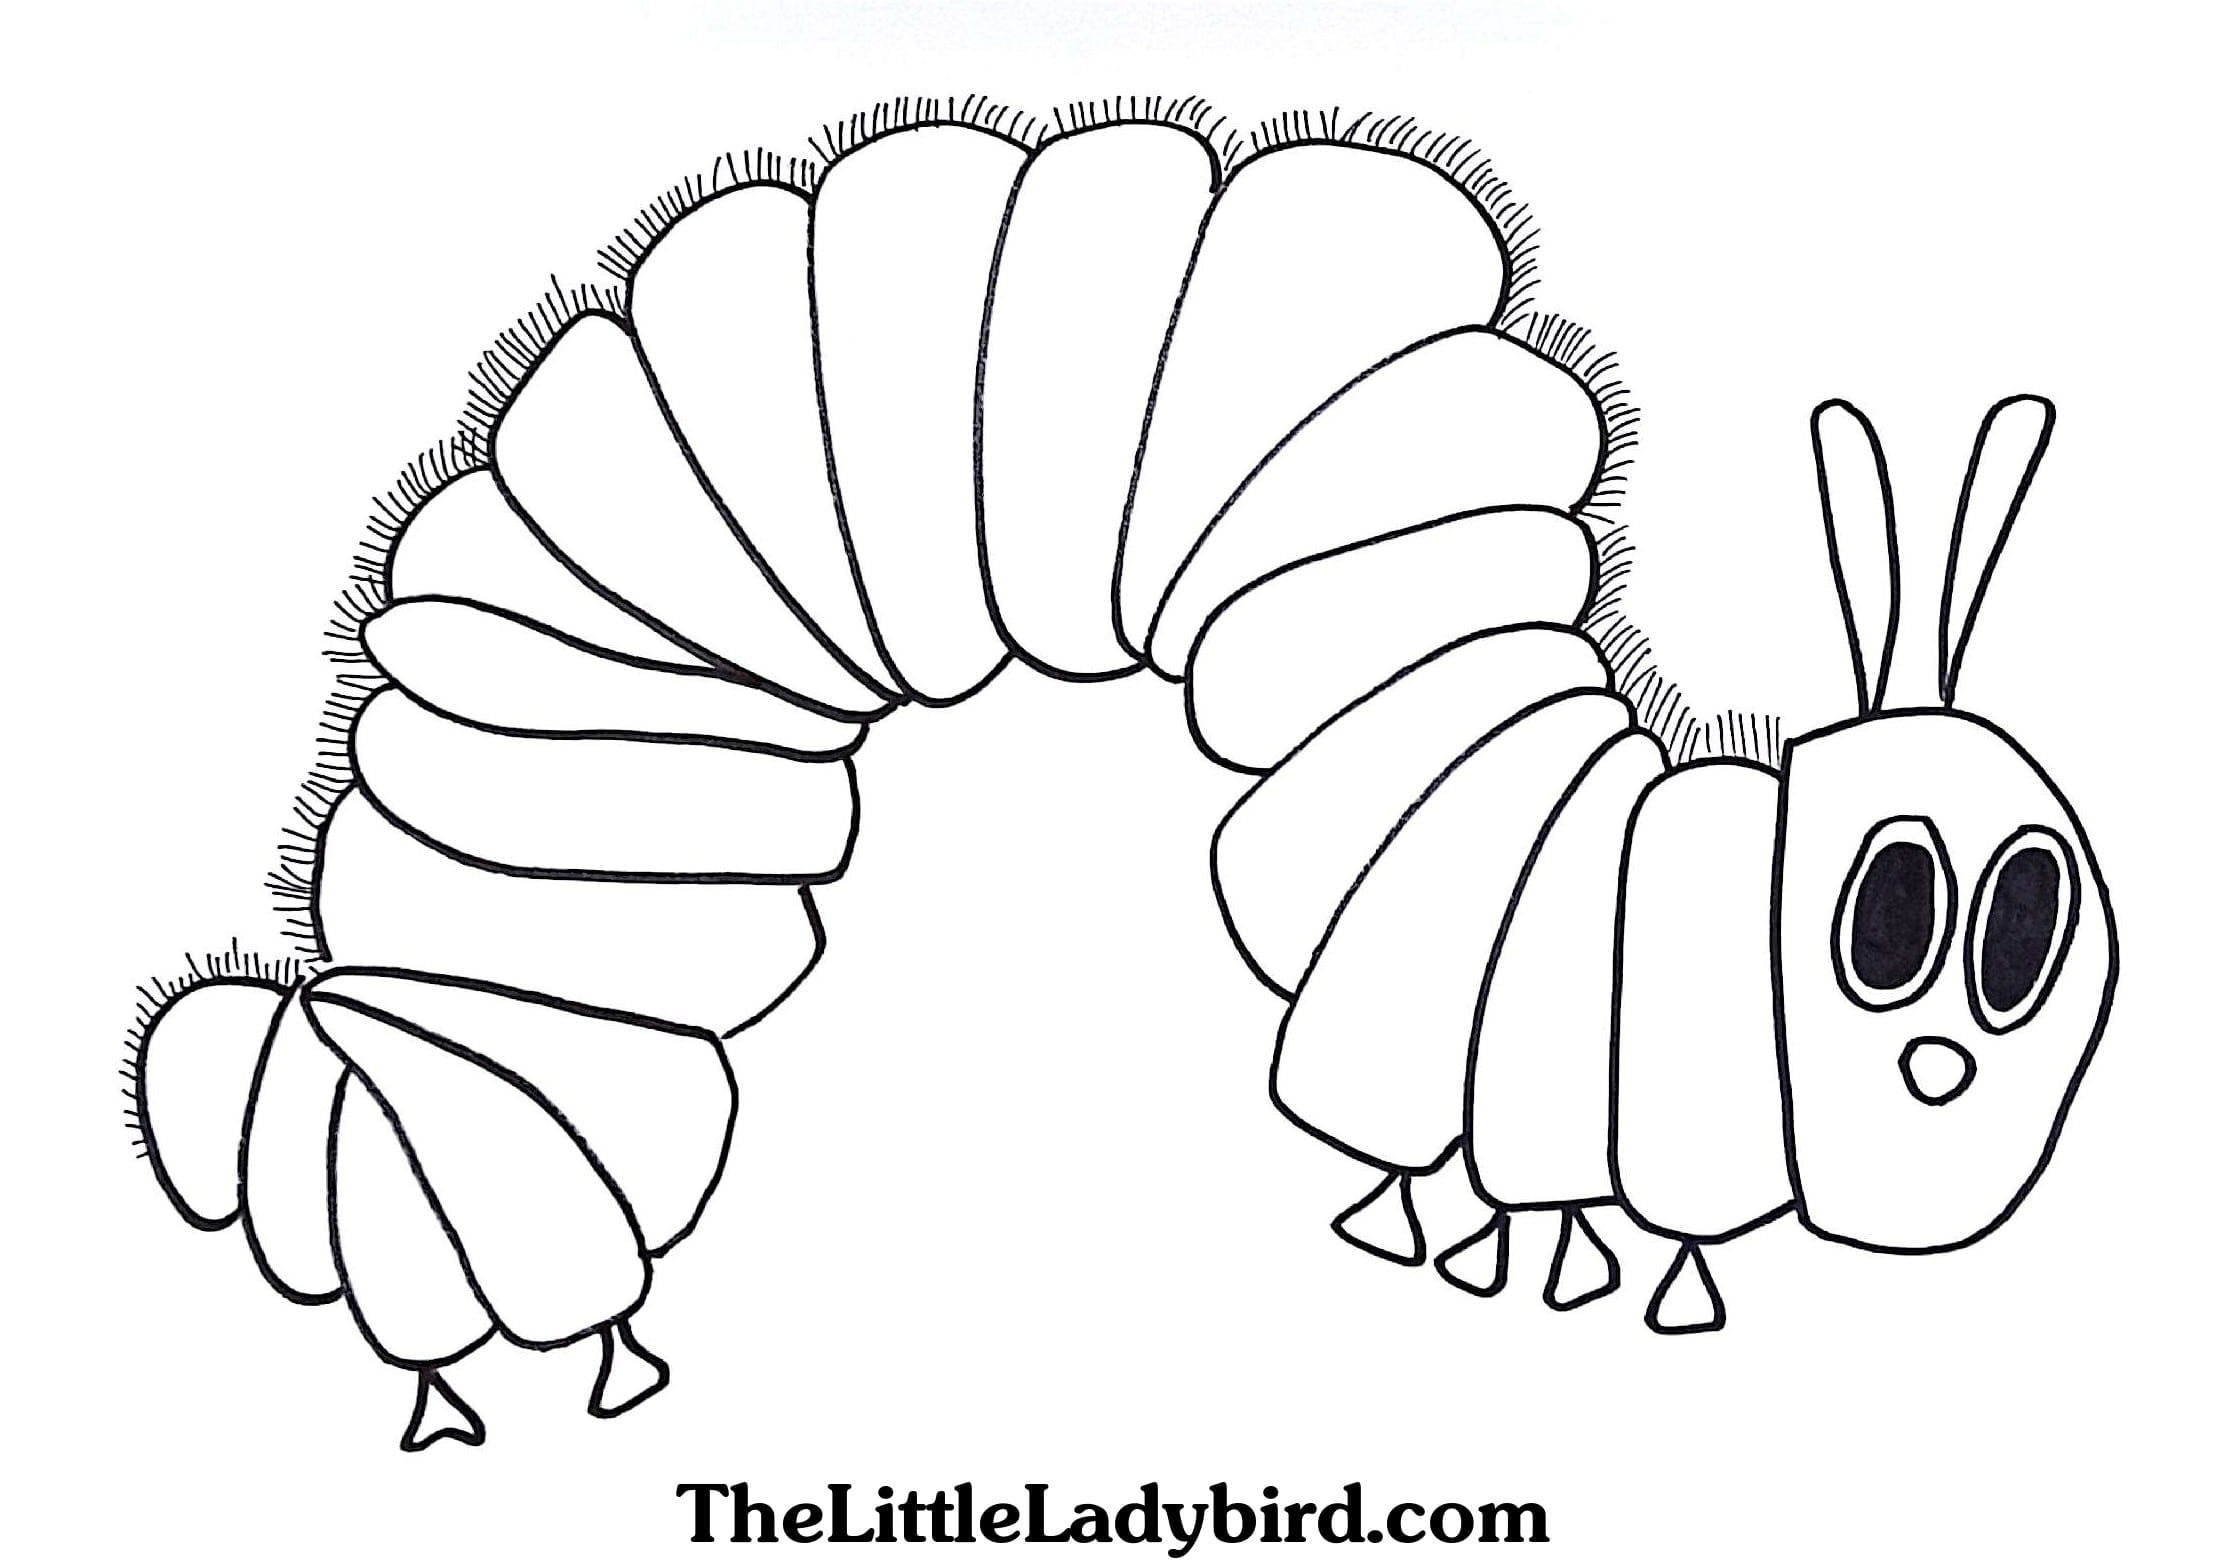 Competitive Very Hungry Caterpillar Coloring Pages Free Download